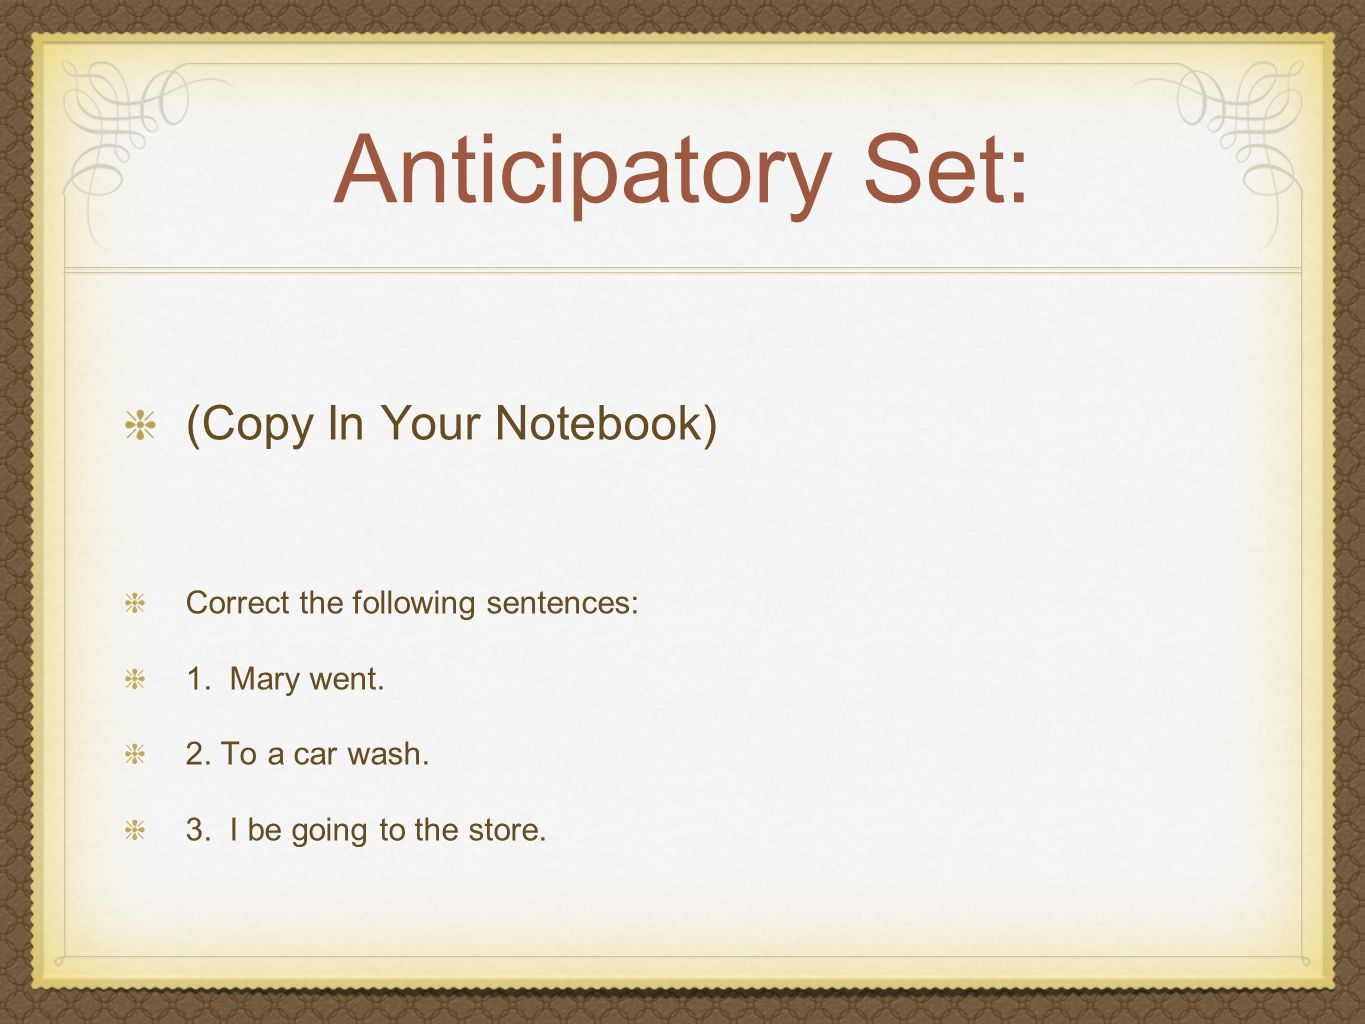 Anticipatory Set: (Copy In Your Notebook)